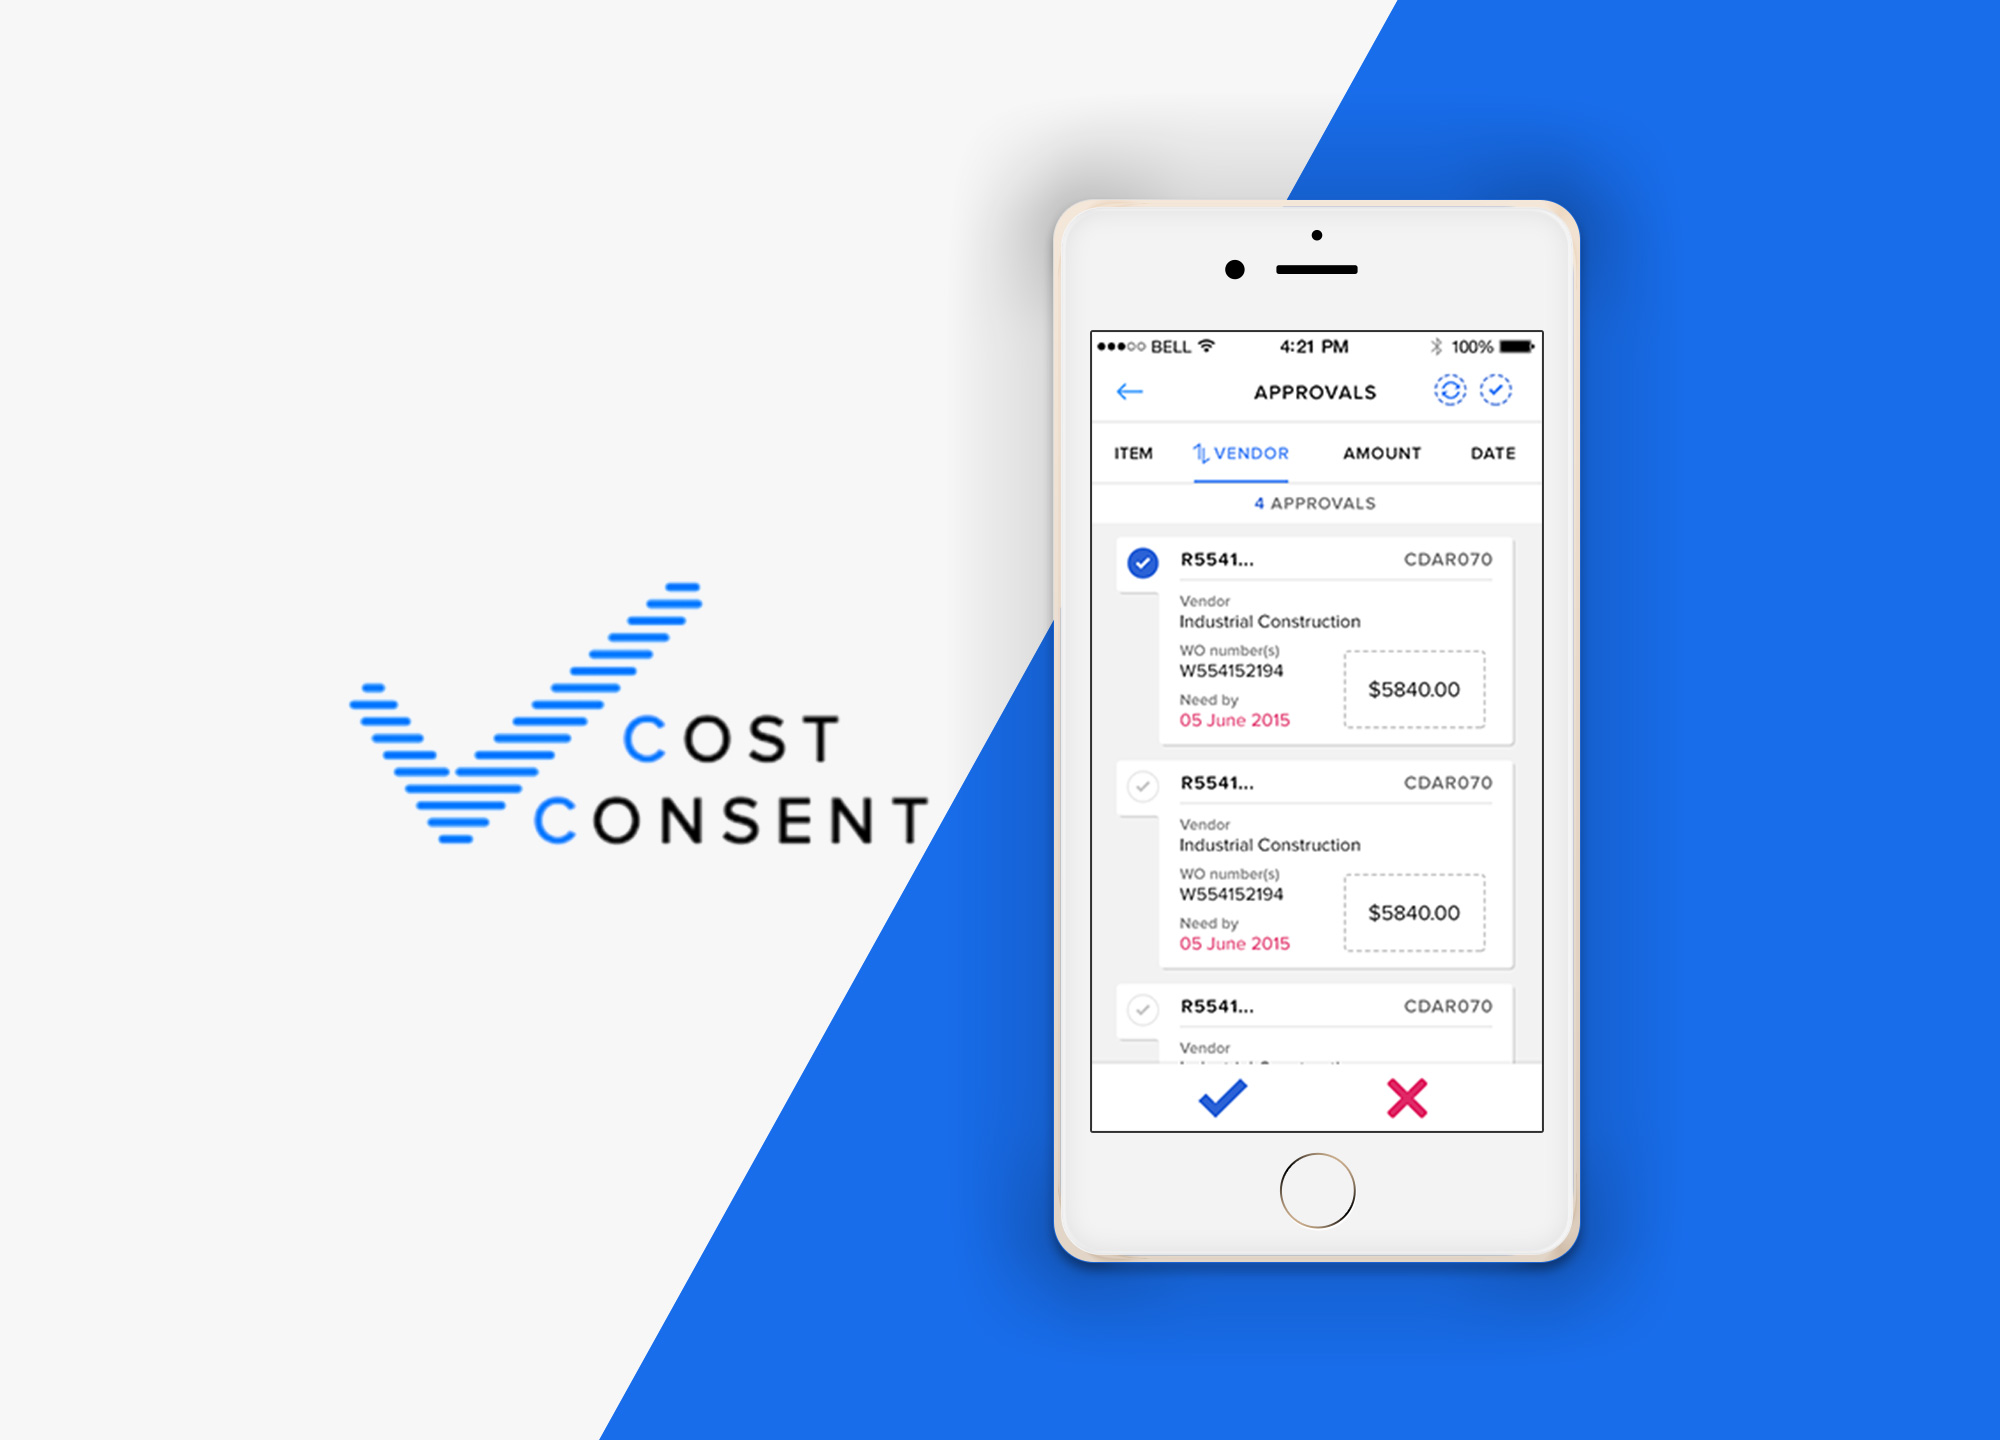 Cost Consent